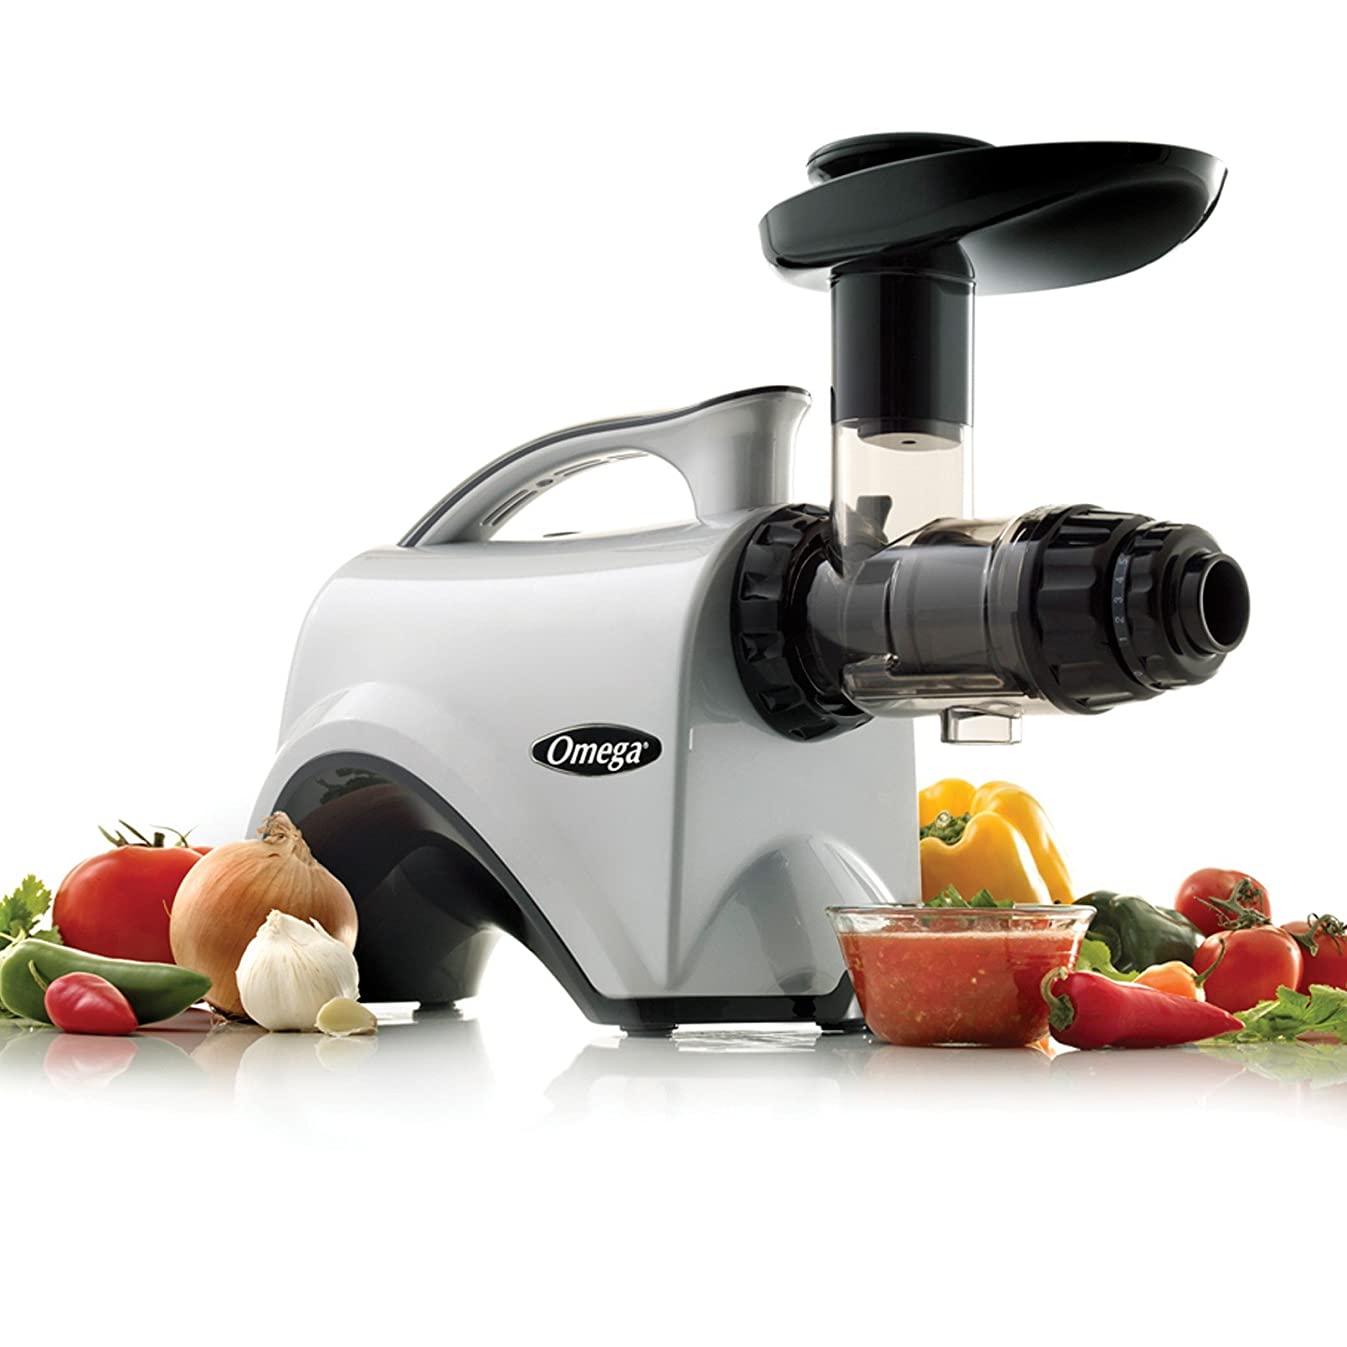 Omega NC800HDS Juice Extractor and Nutrition Center Creates Fruit Vegetable and Wheatgrass Juice Quiet Motor Slow Masticating Dual-Stage Extraction with Adjustable Settings, 150-Watt, Silver